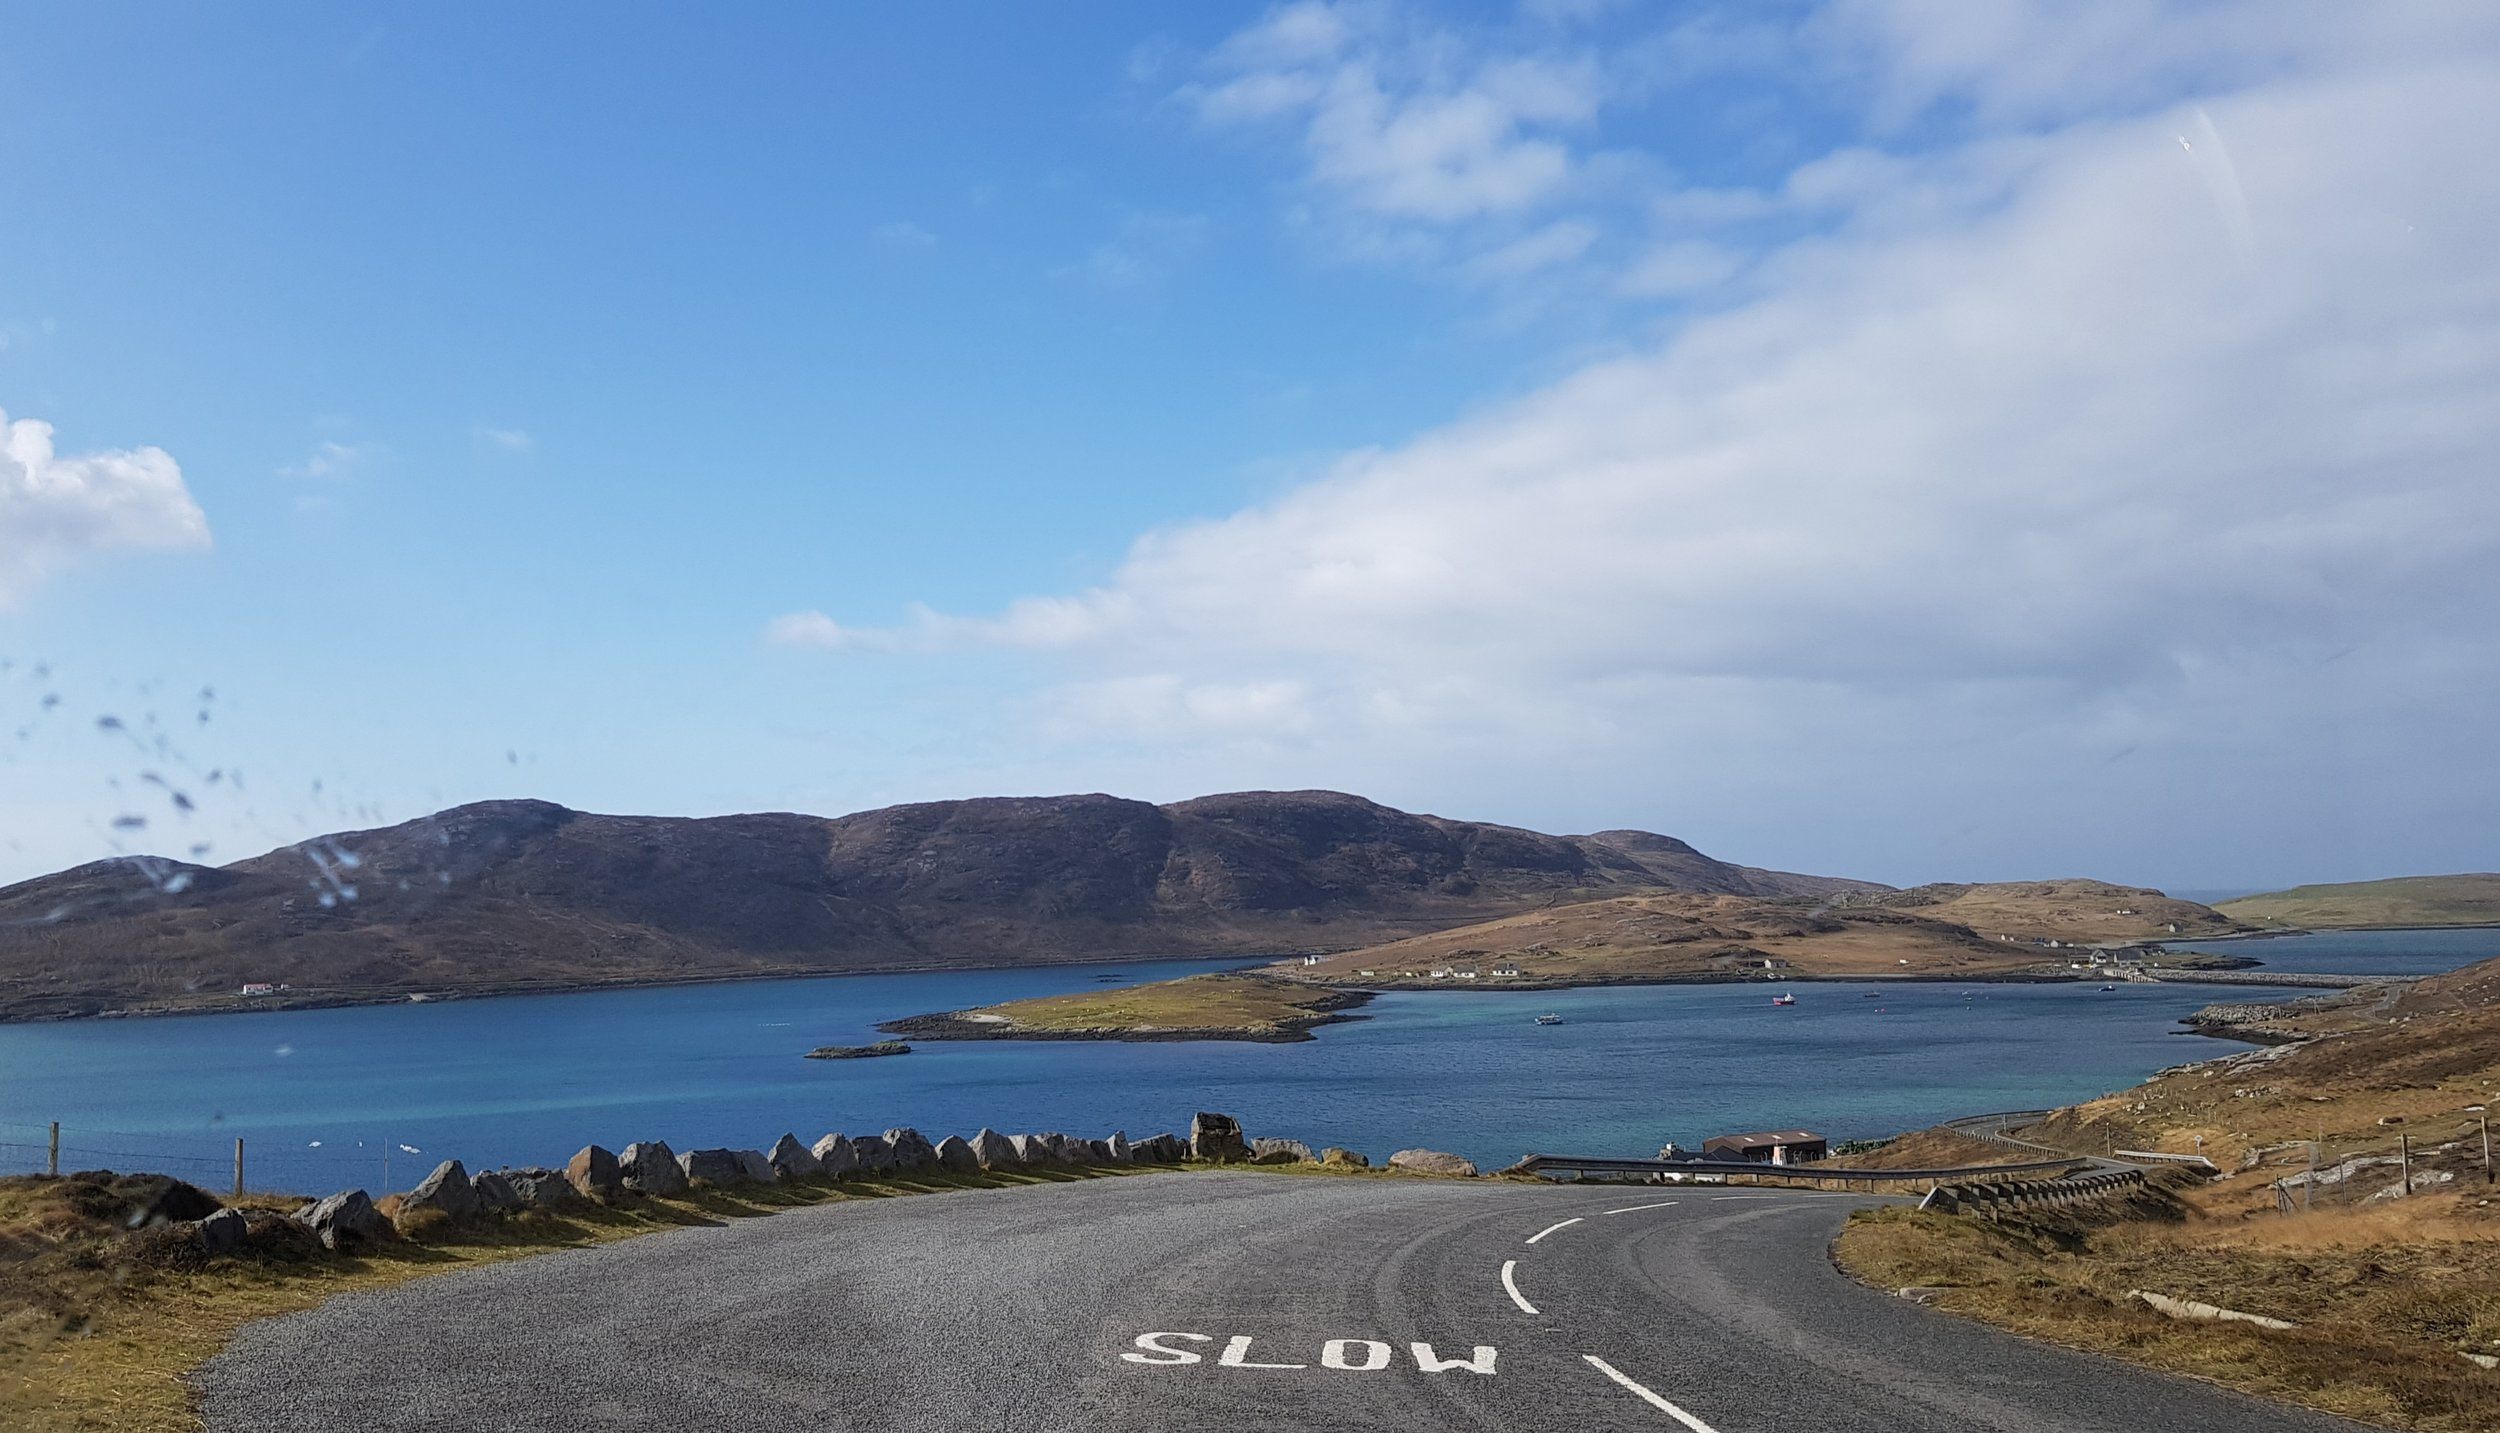 Driving down to Vatersay Causeway